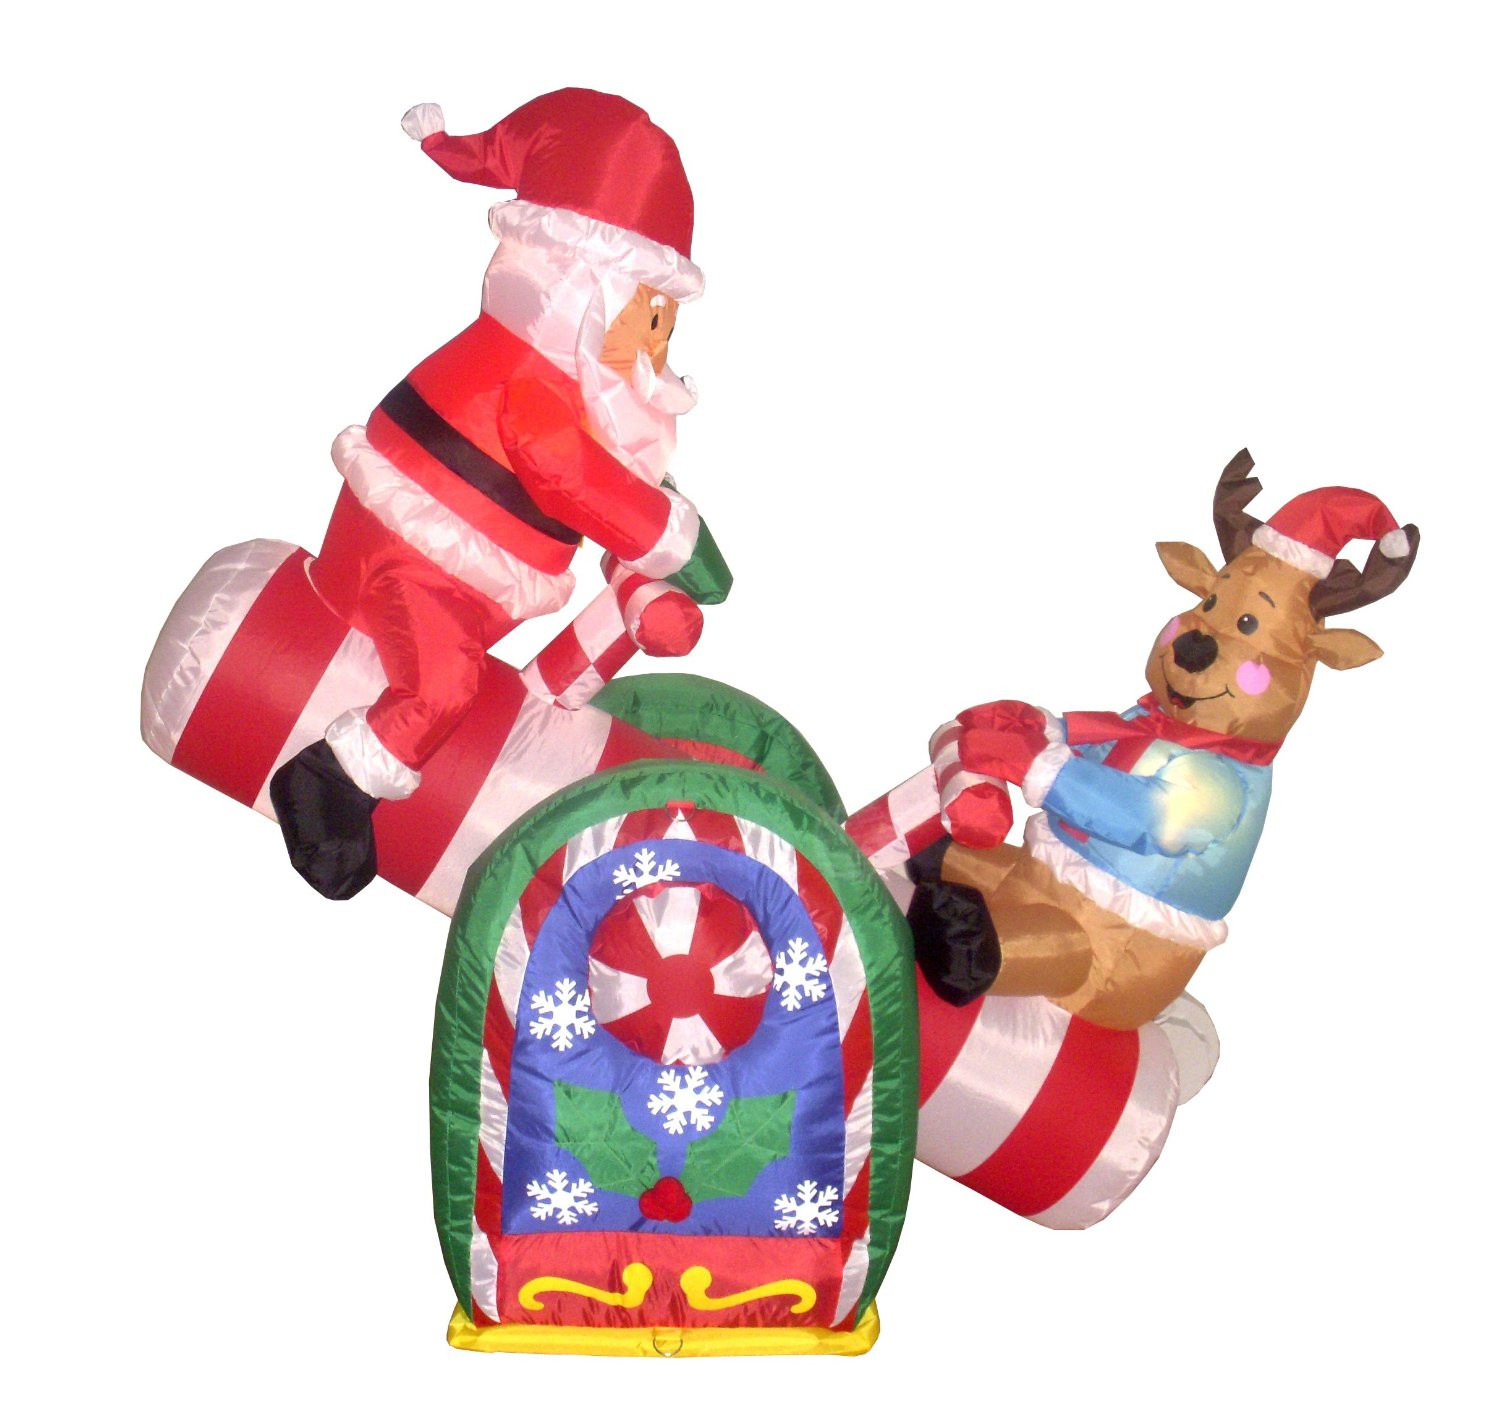 Animated Outdoor Christmas Decorations  inflatable outdoor decorations